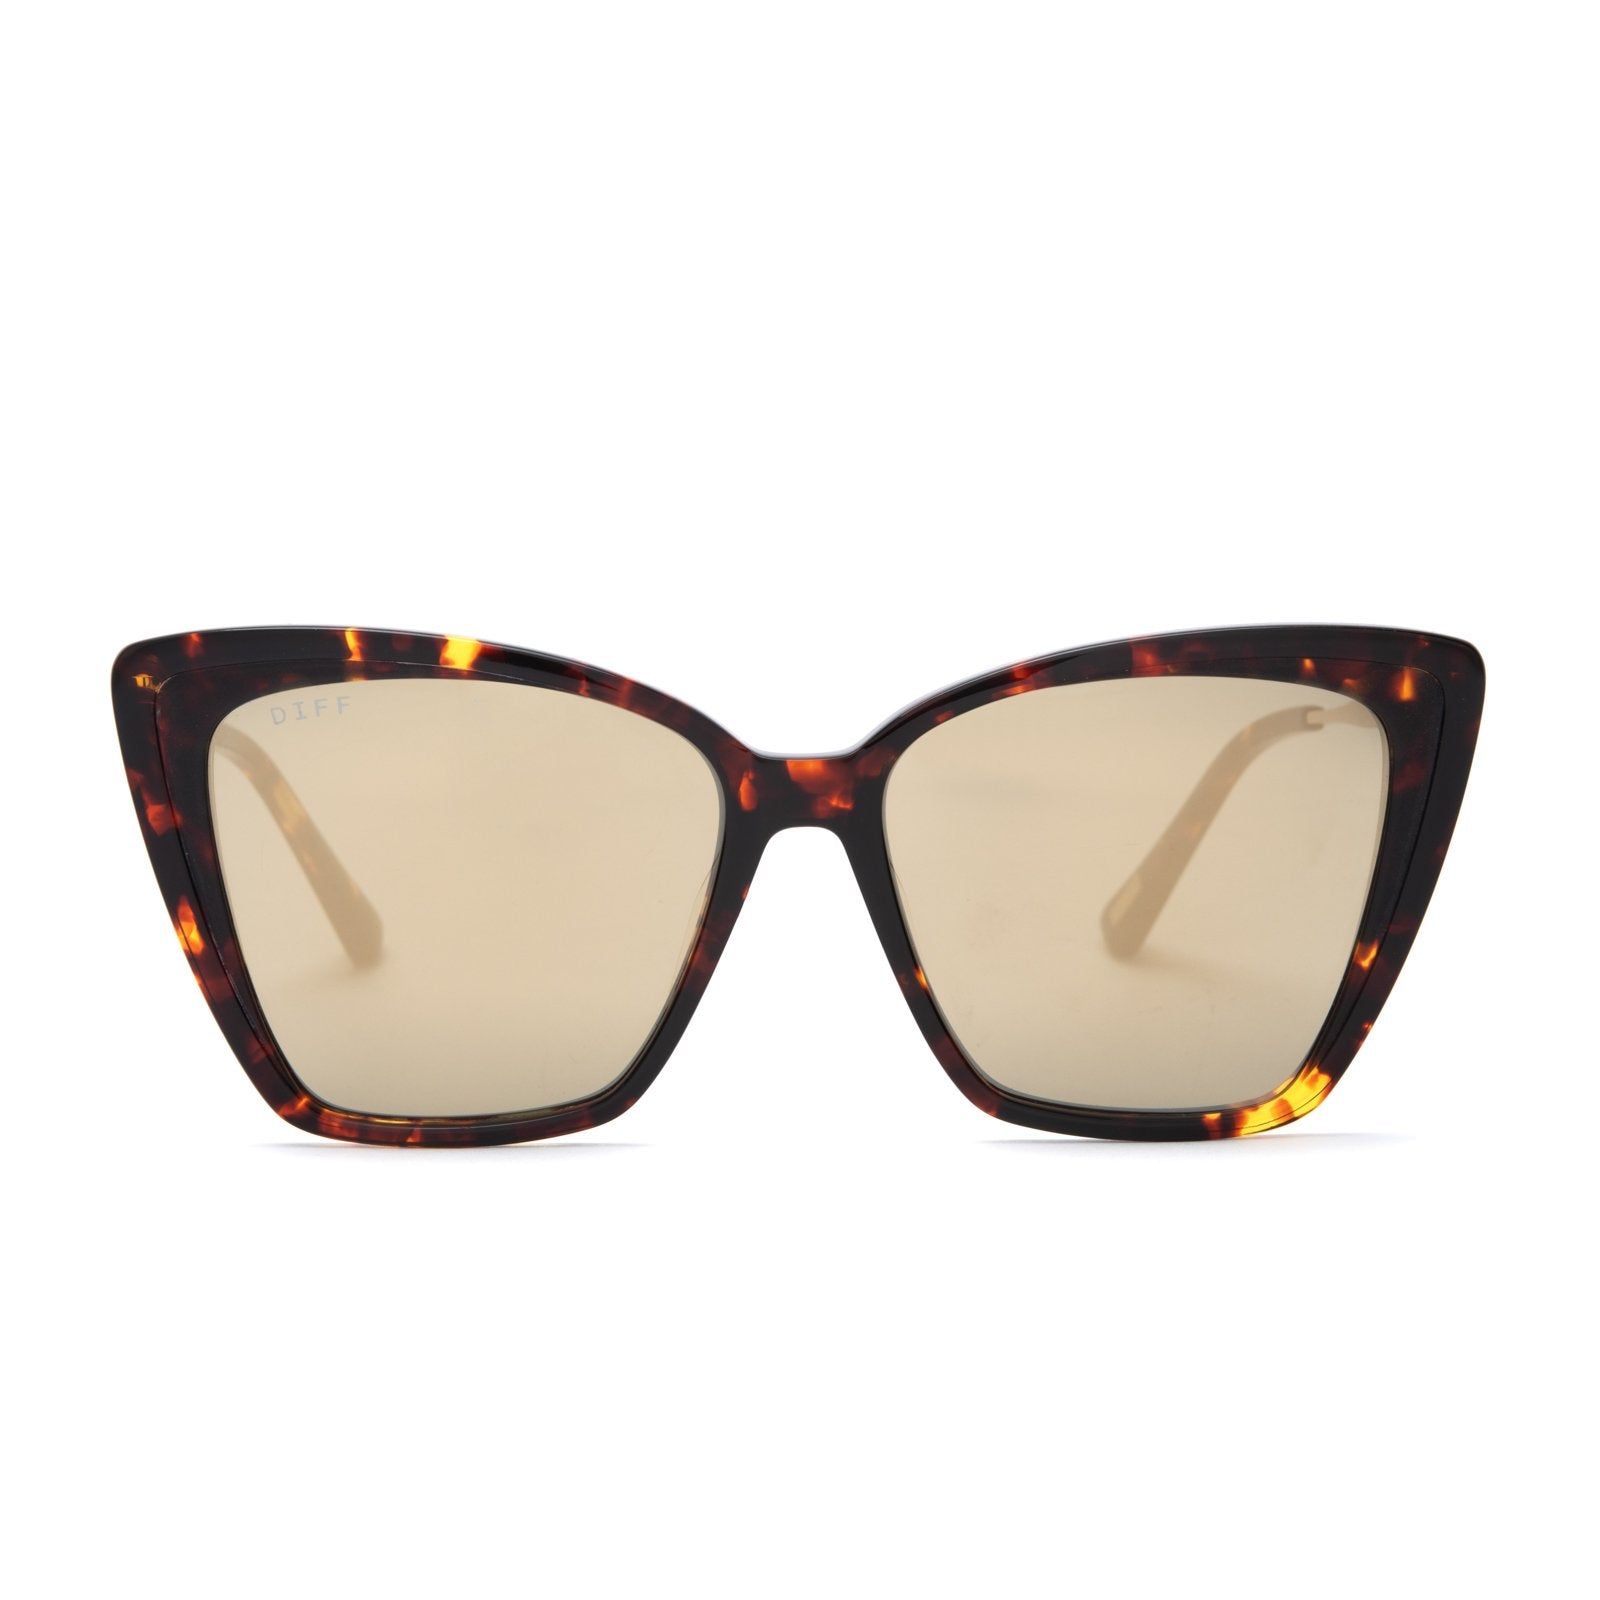 Becky II sunglasses with dark tortoise frames and gold mirror polarized lens front view